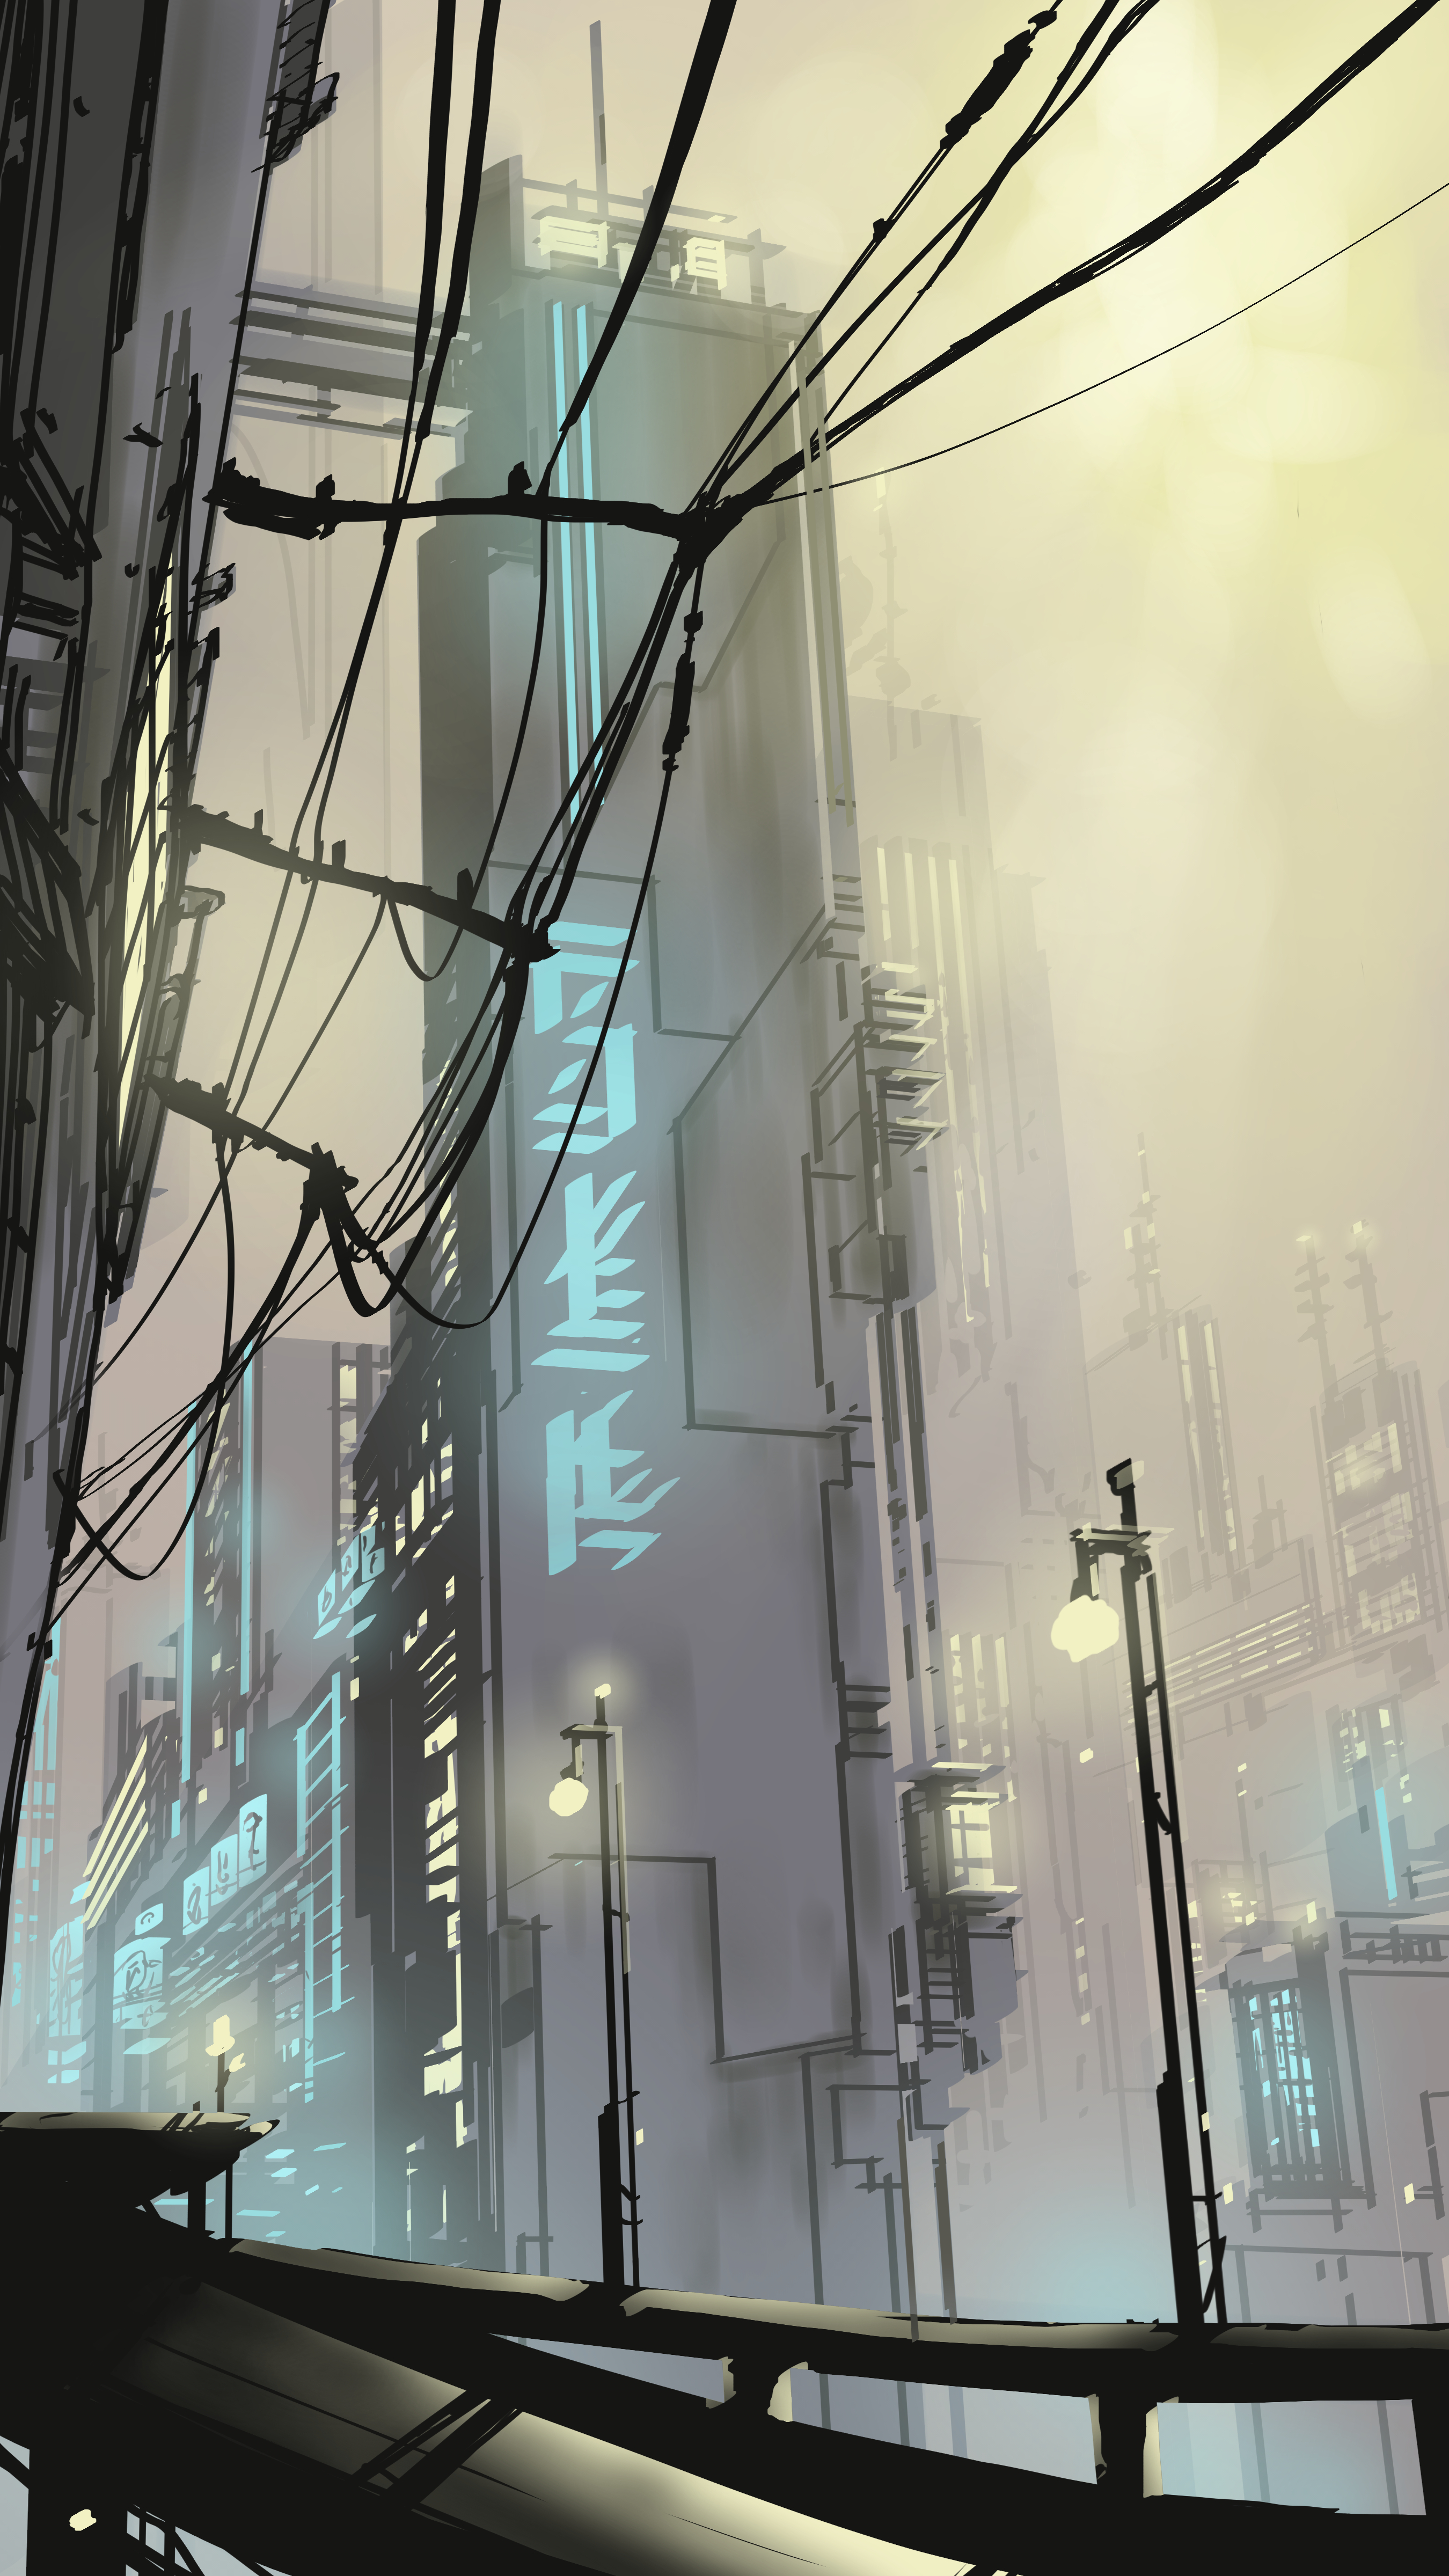 83794 download wallpaper Vector, Art, City, Building, Lights, Lanterns, Wires, Wire screensavers and pictures for free